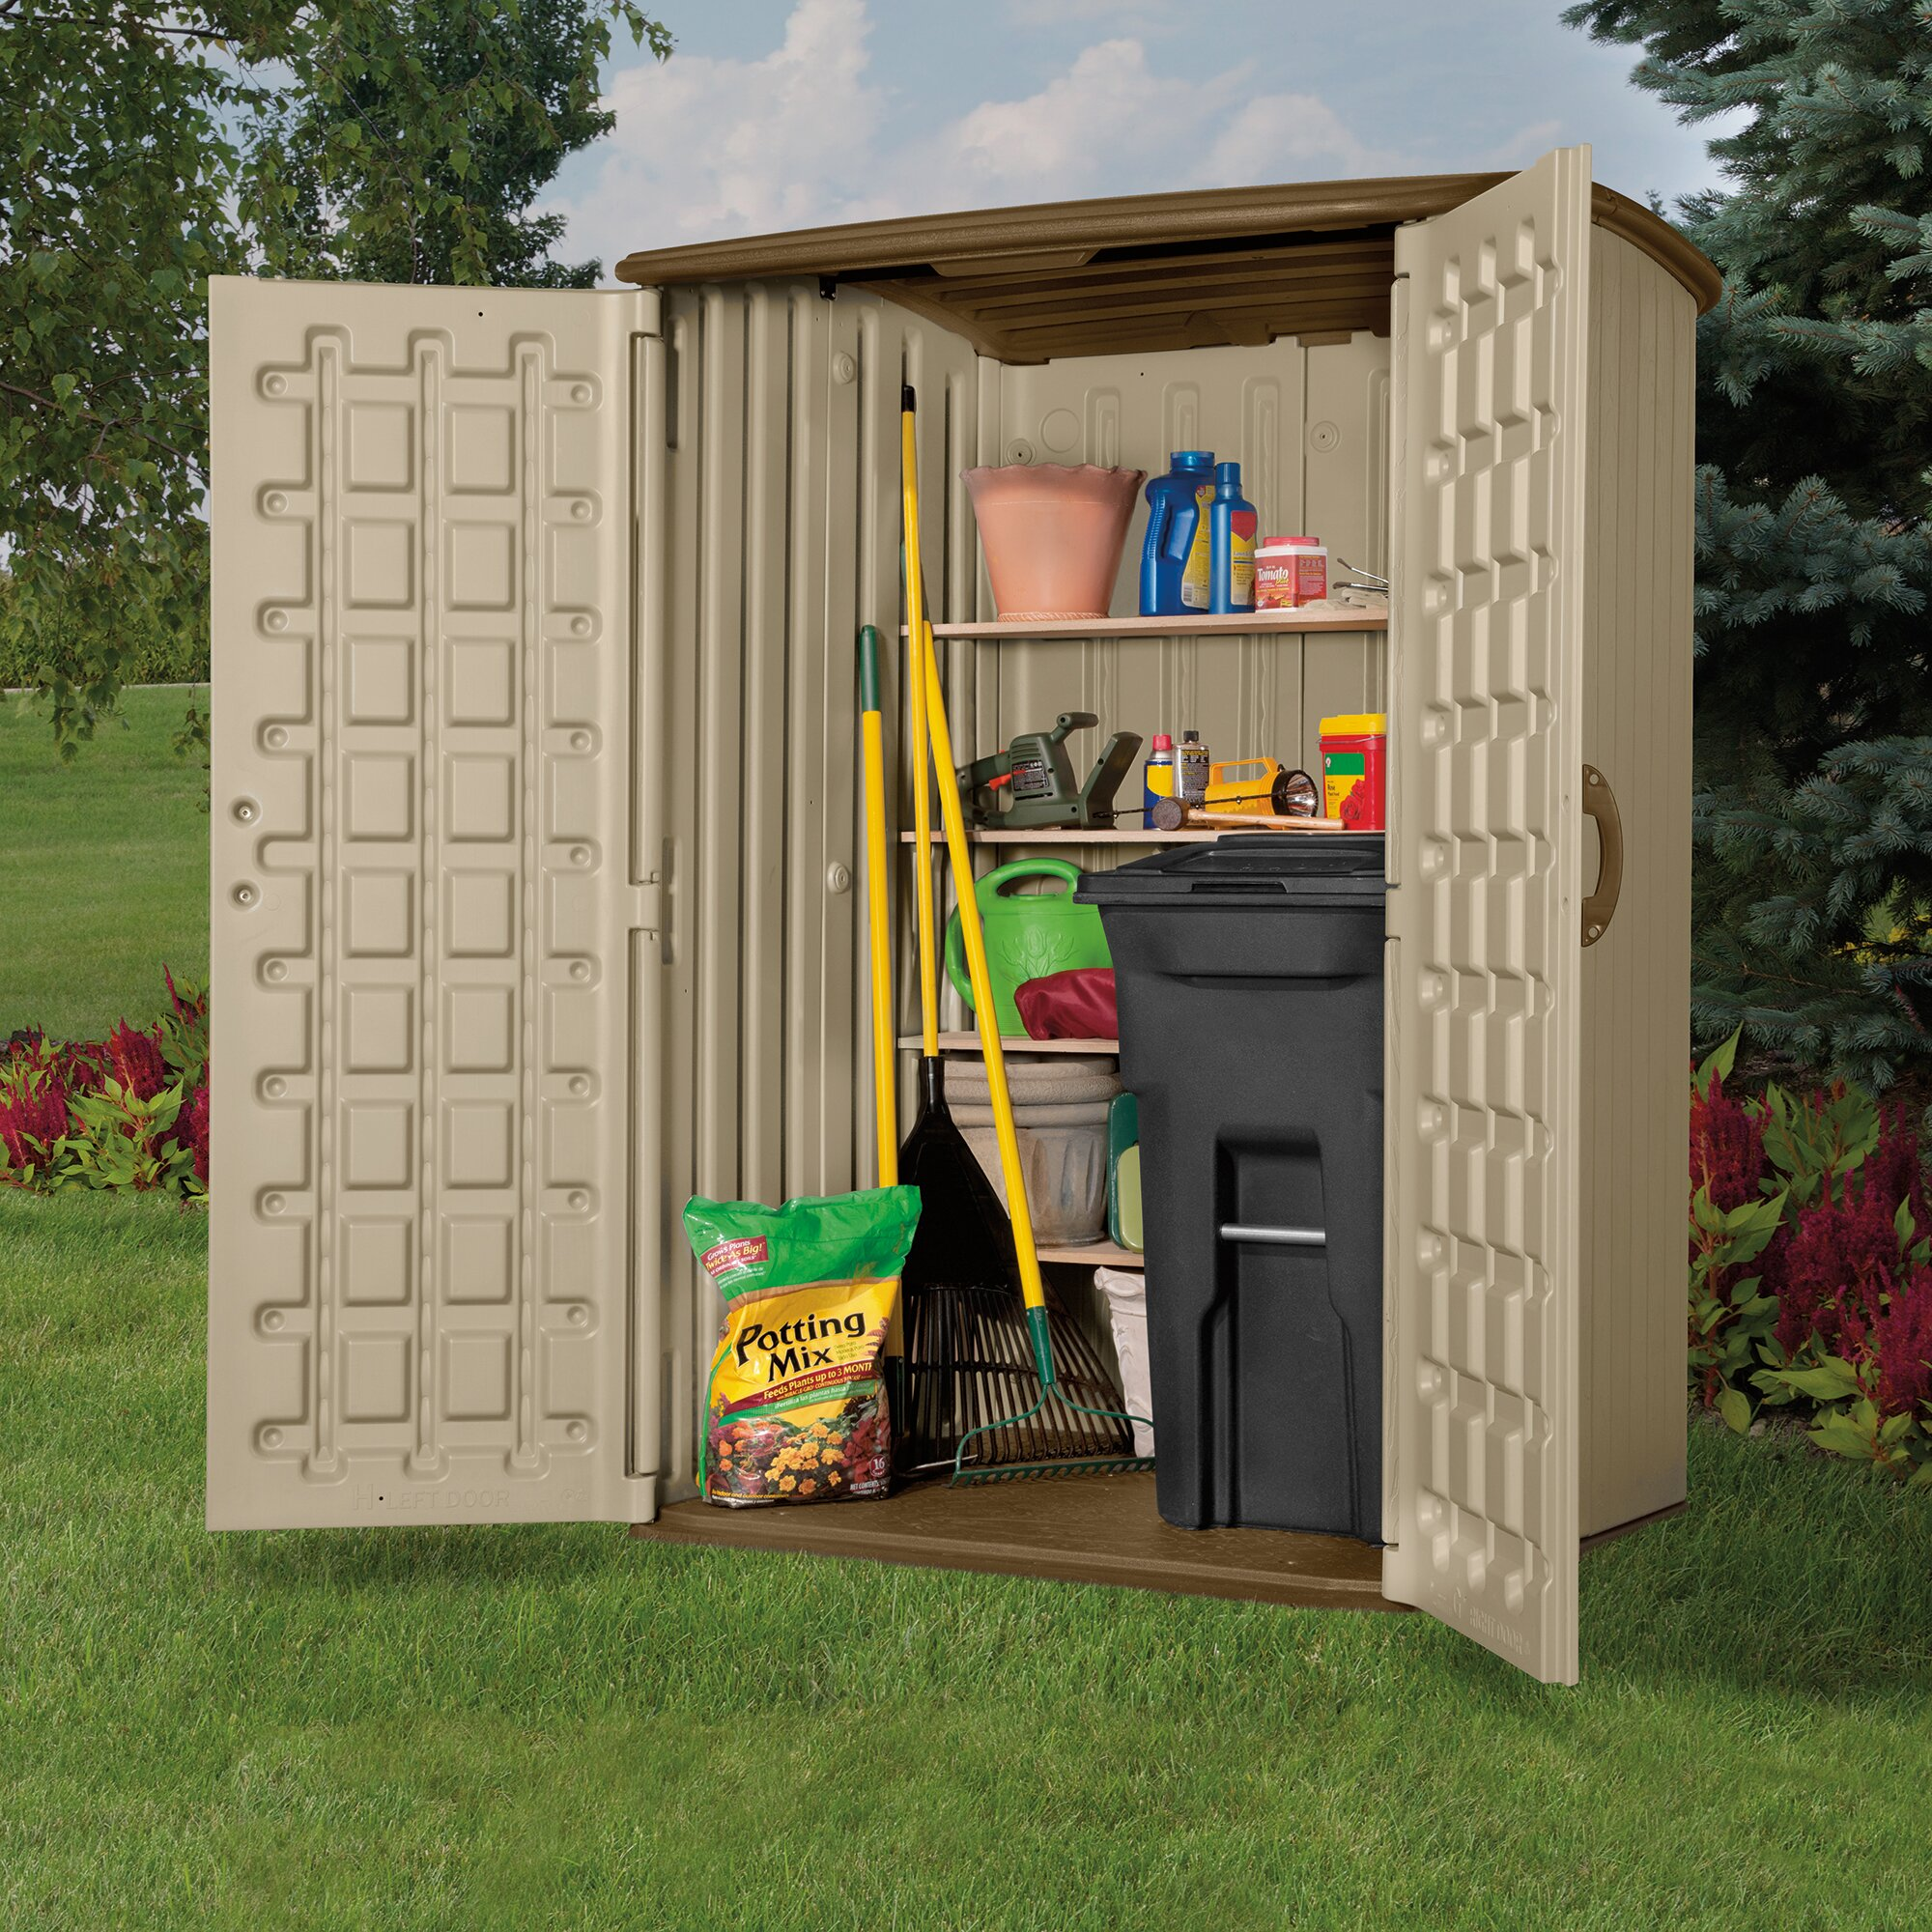 Garden Sheds 3 X 4 garden sheds 4 x 5 absco storemaster metal pent shed throughout